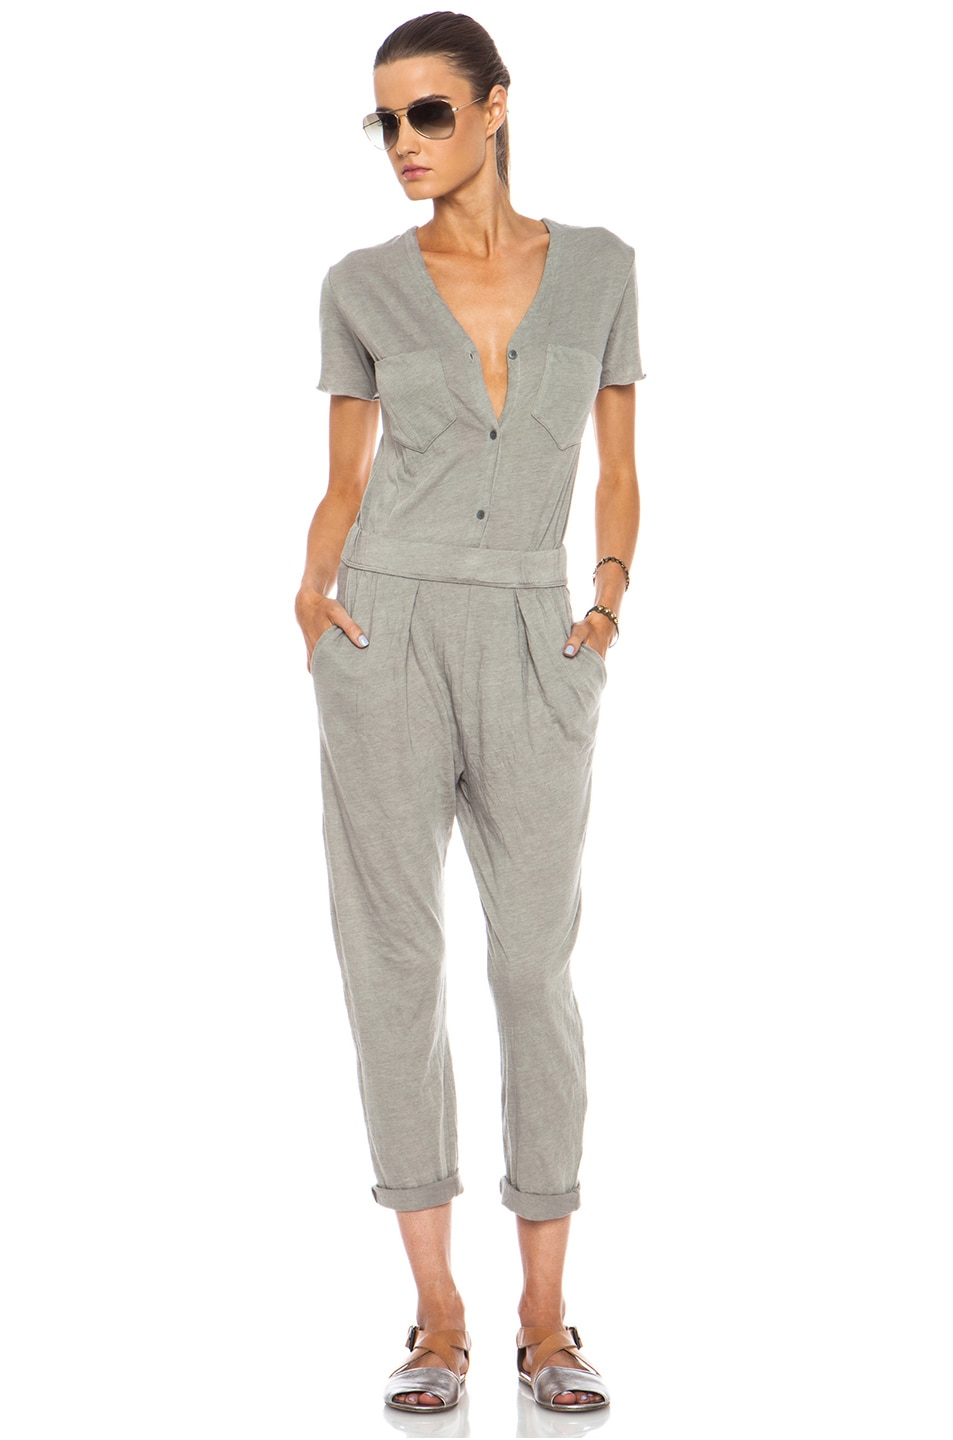 Image 1 of Raquel Allegra Work Wear Cotton-Blend Jumpsuit in Grey